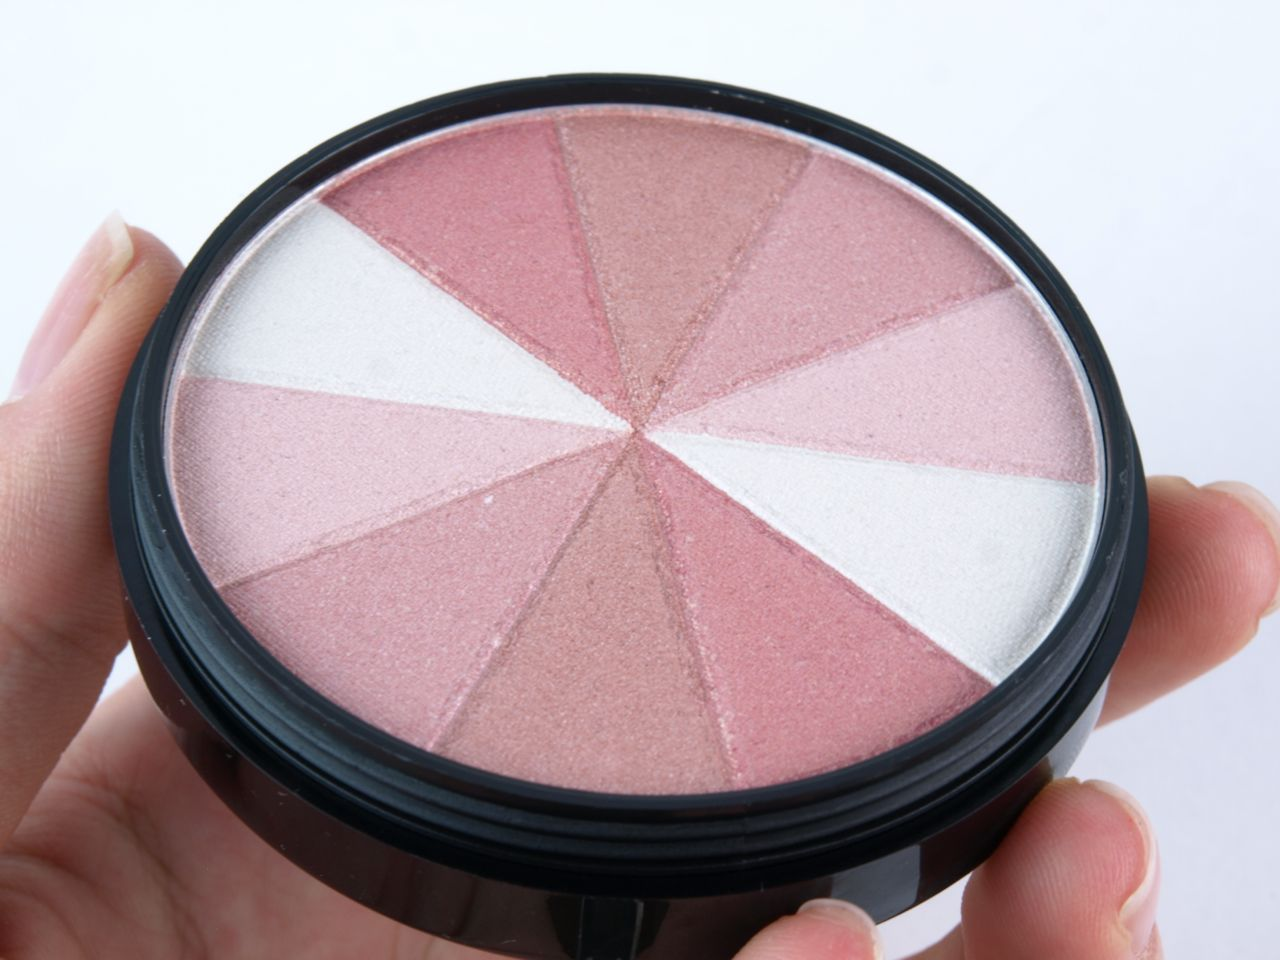 Smashbox Fusion Soft Lights In Baked Starblush Review And